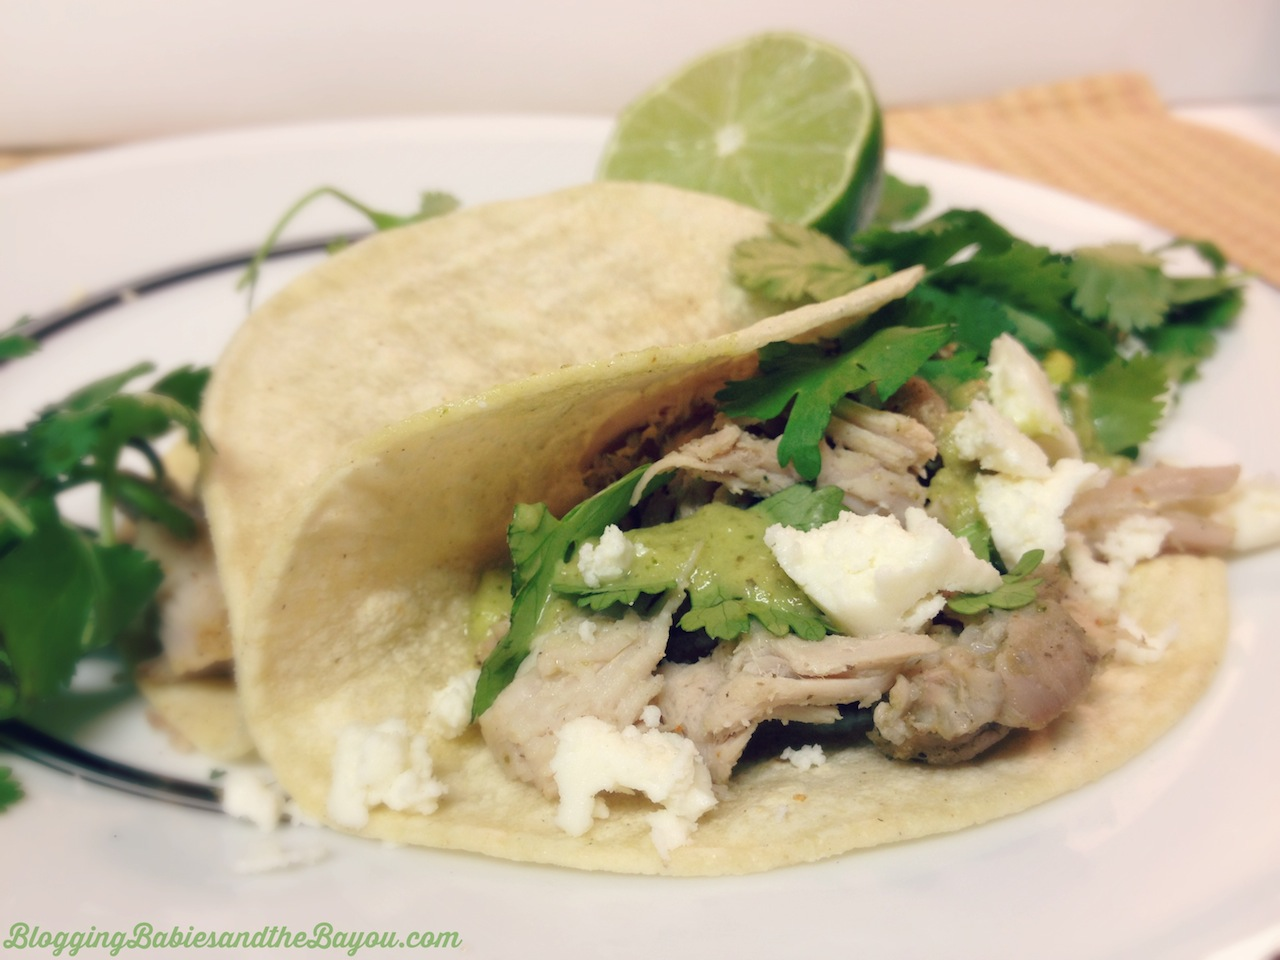 Pork Carnitas con Tomatillo Verde Sauce - Tabasco Green Pepper Sauce #SeasonedGreetings #Shop #Cbias